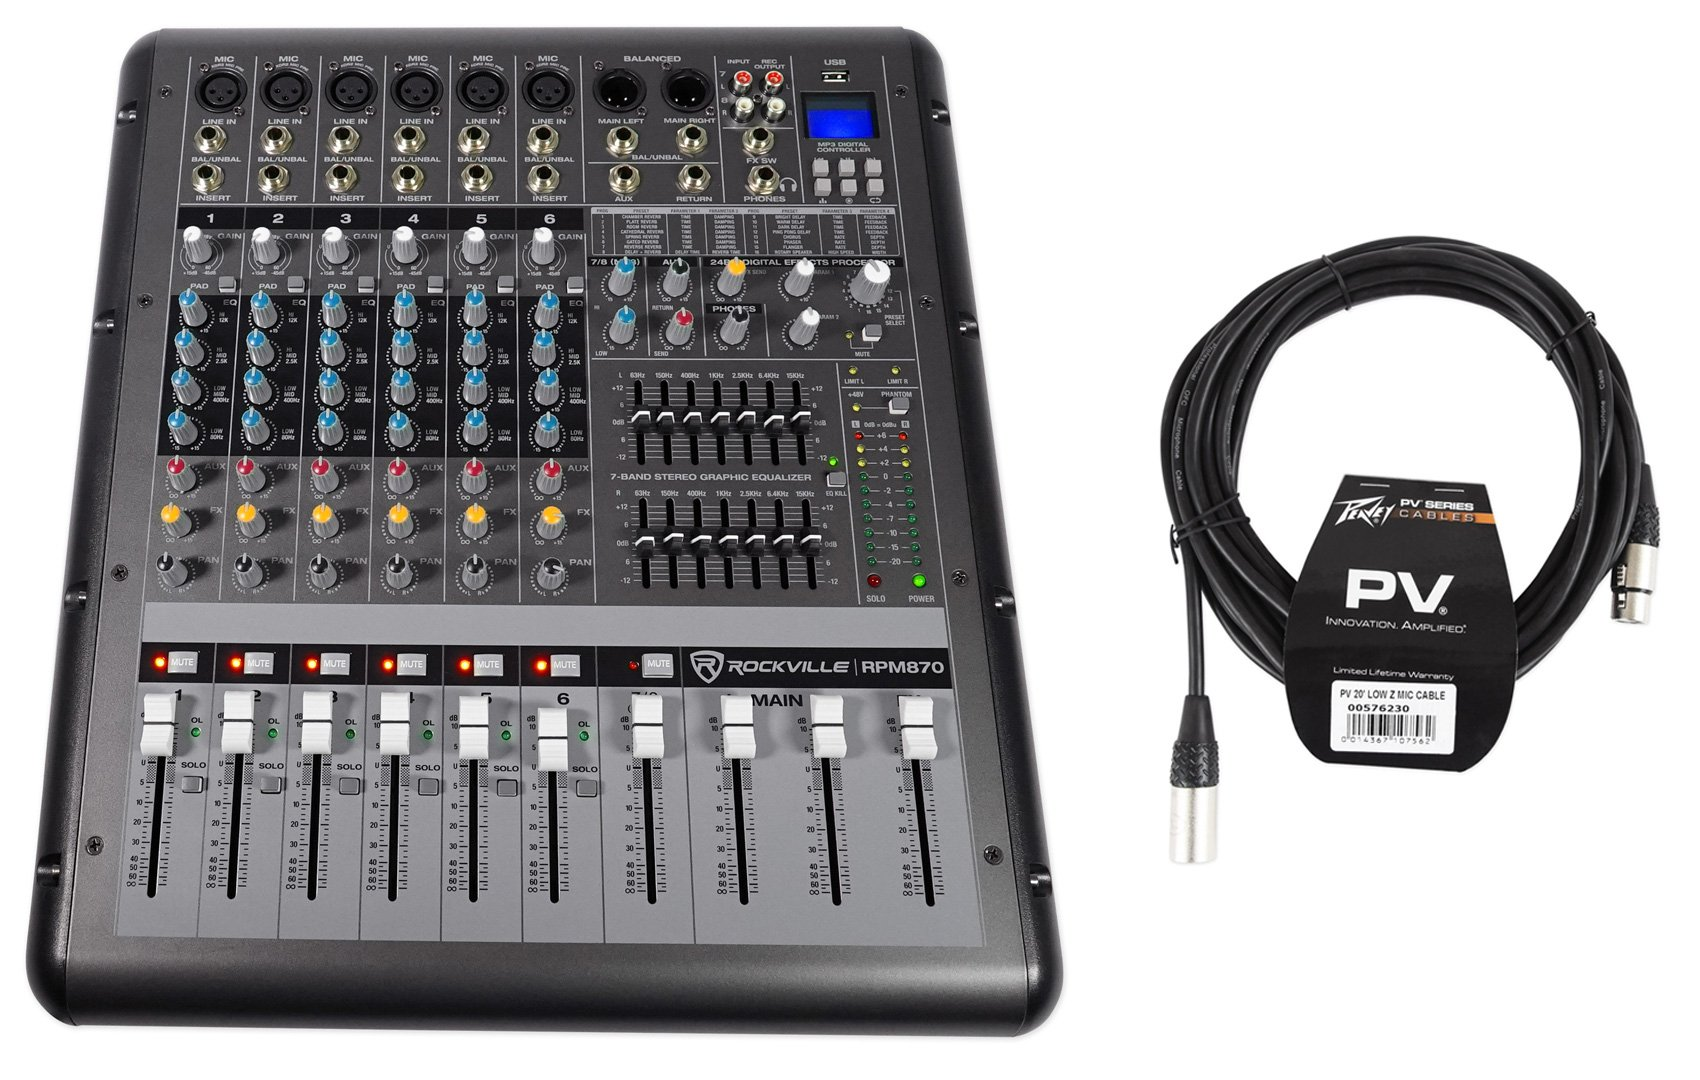 Rockville RPM870 8 Channel 6000w Powered Mixer w/USB, Effects+Peavey XLR Cable by Rockvile